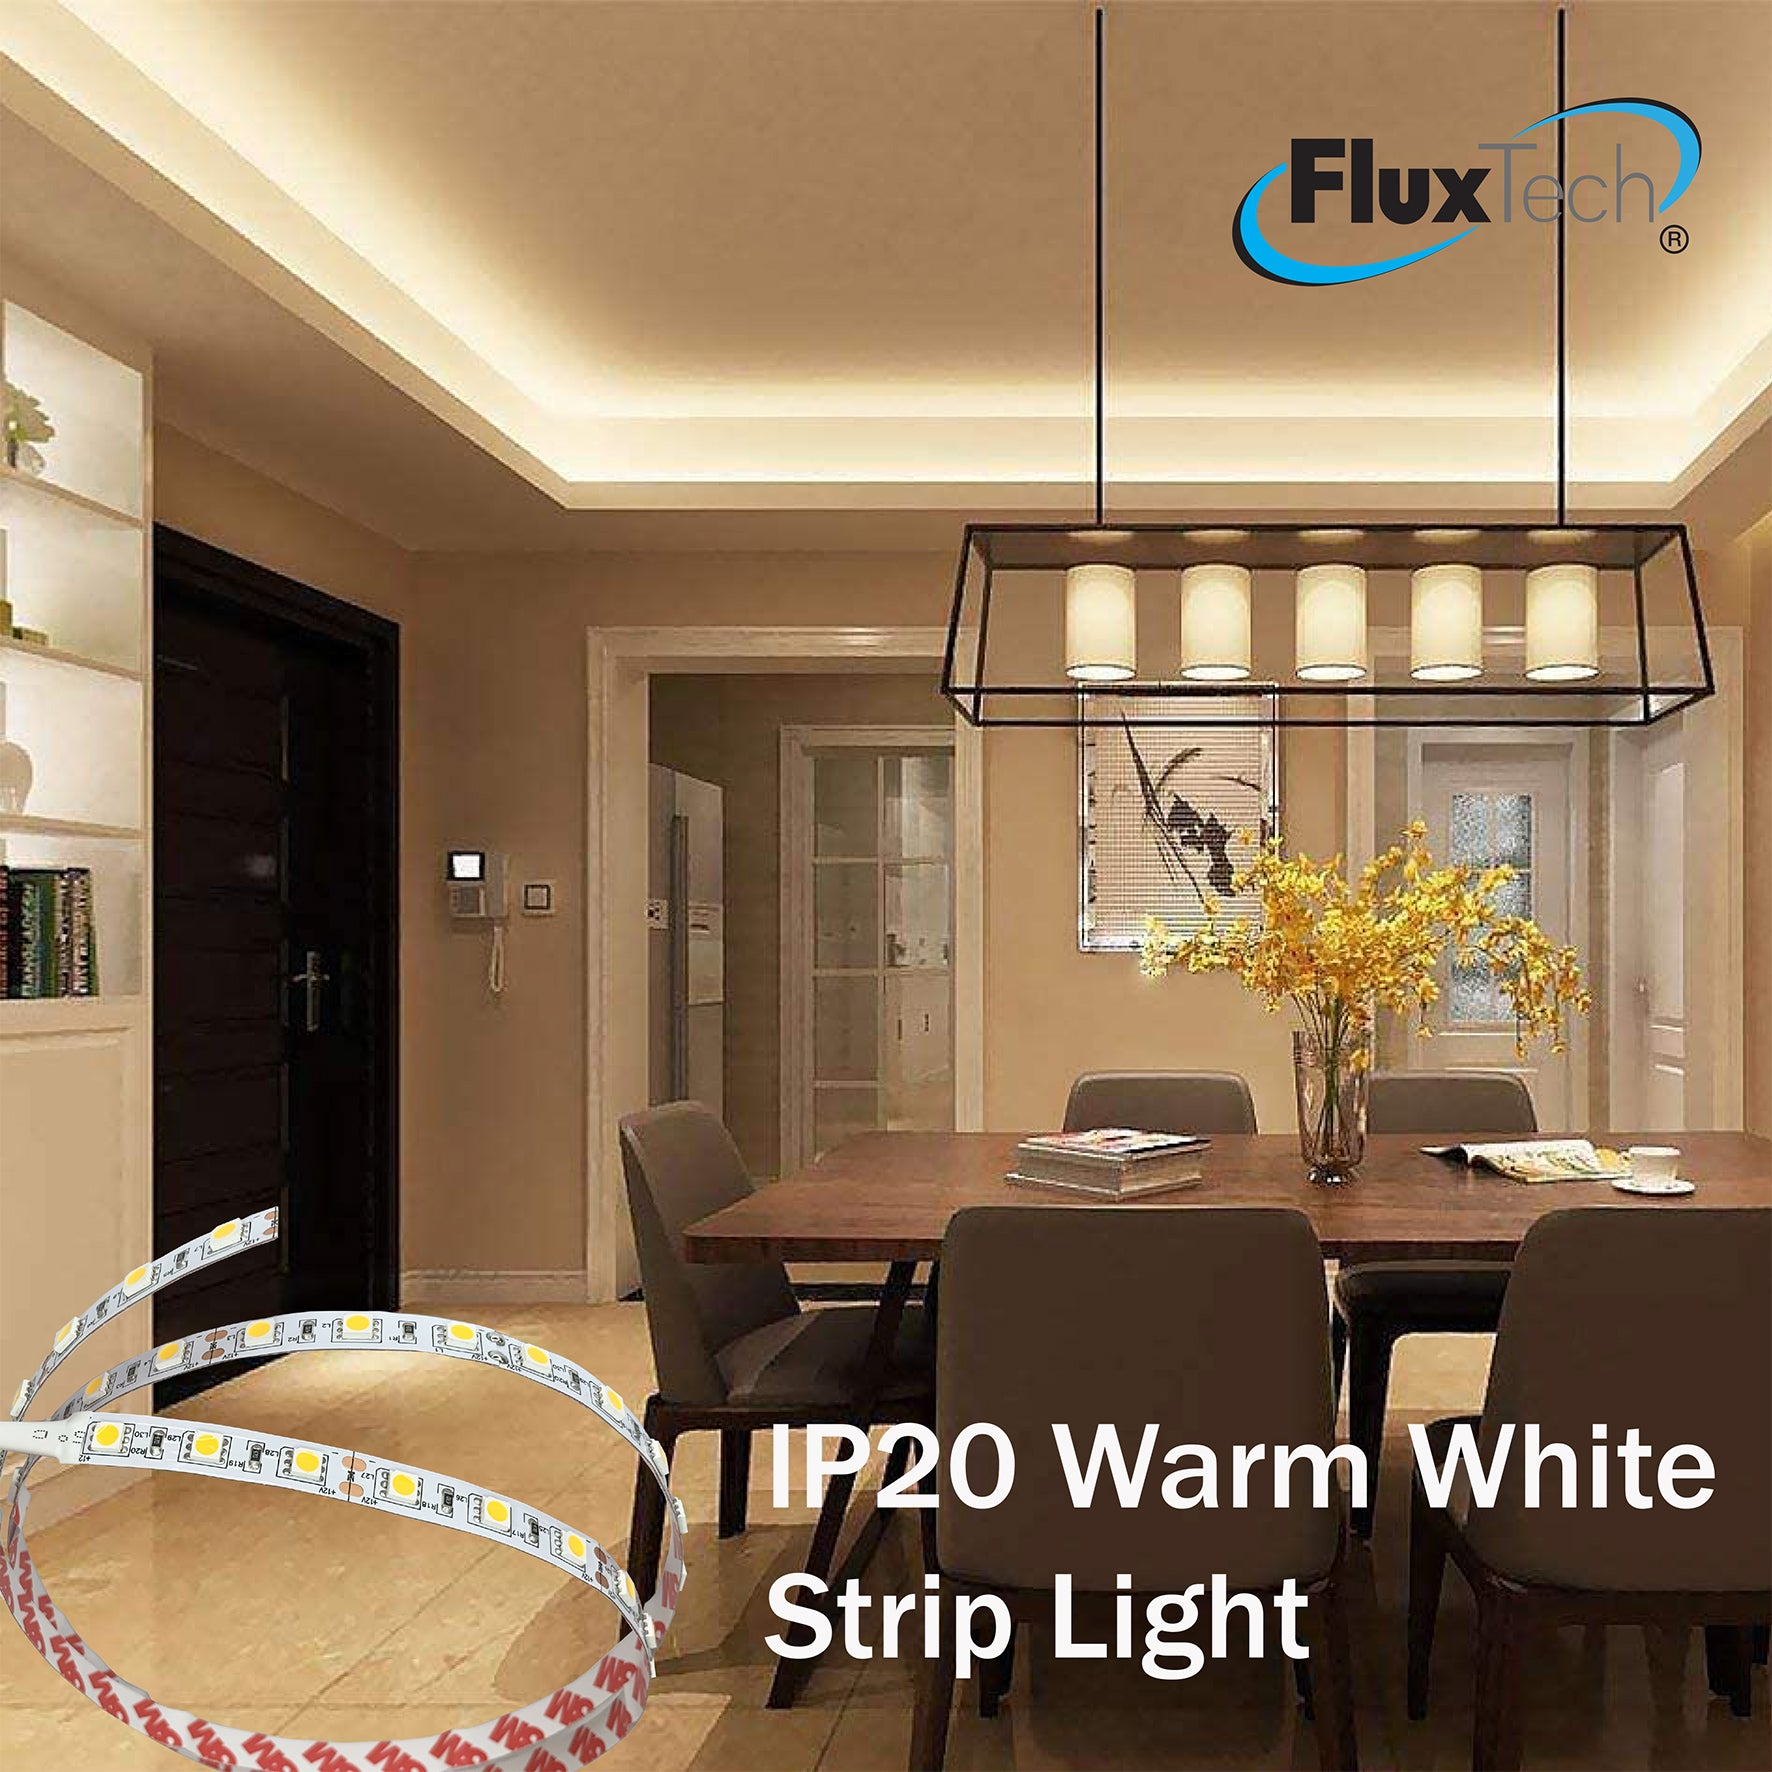 FluxTech - IP20 High Power 2in1 CCT Colour Temperature Changing Strip Light - Low Voltage